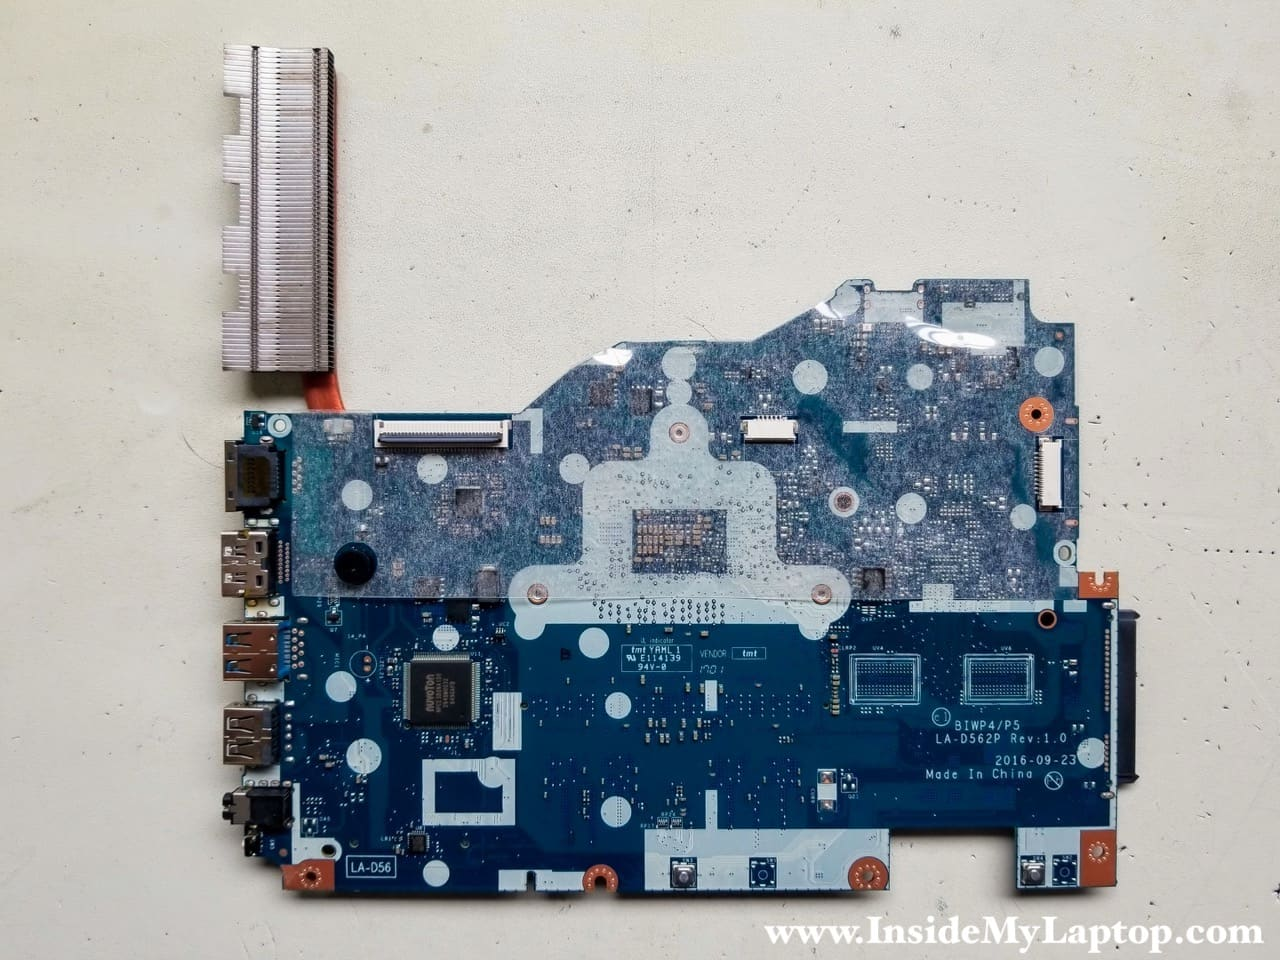 How to disassemble Lenovo ideapad 110-15ISK model 80UD